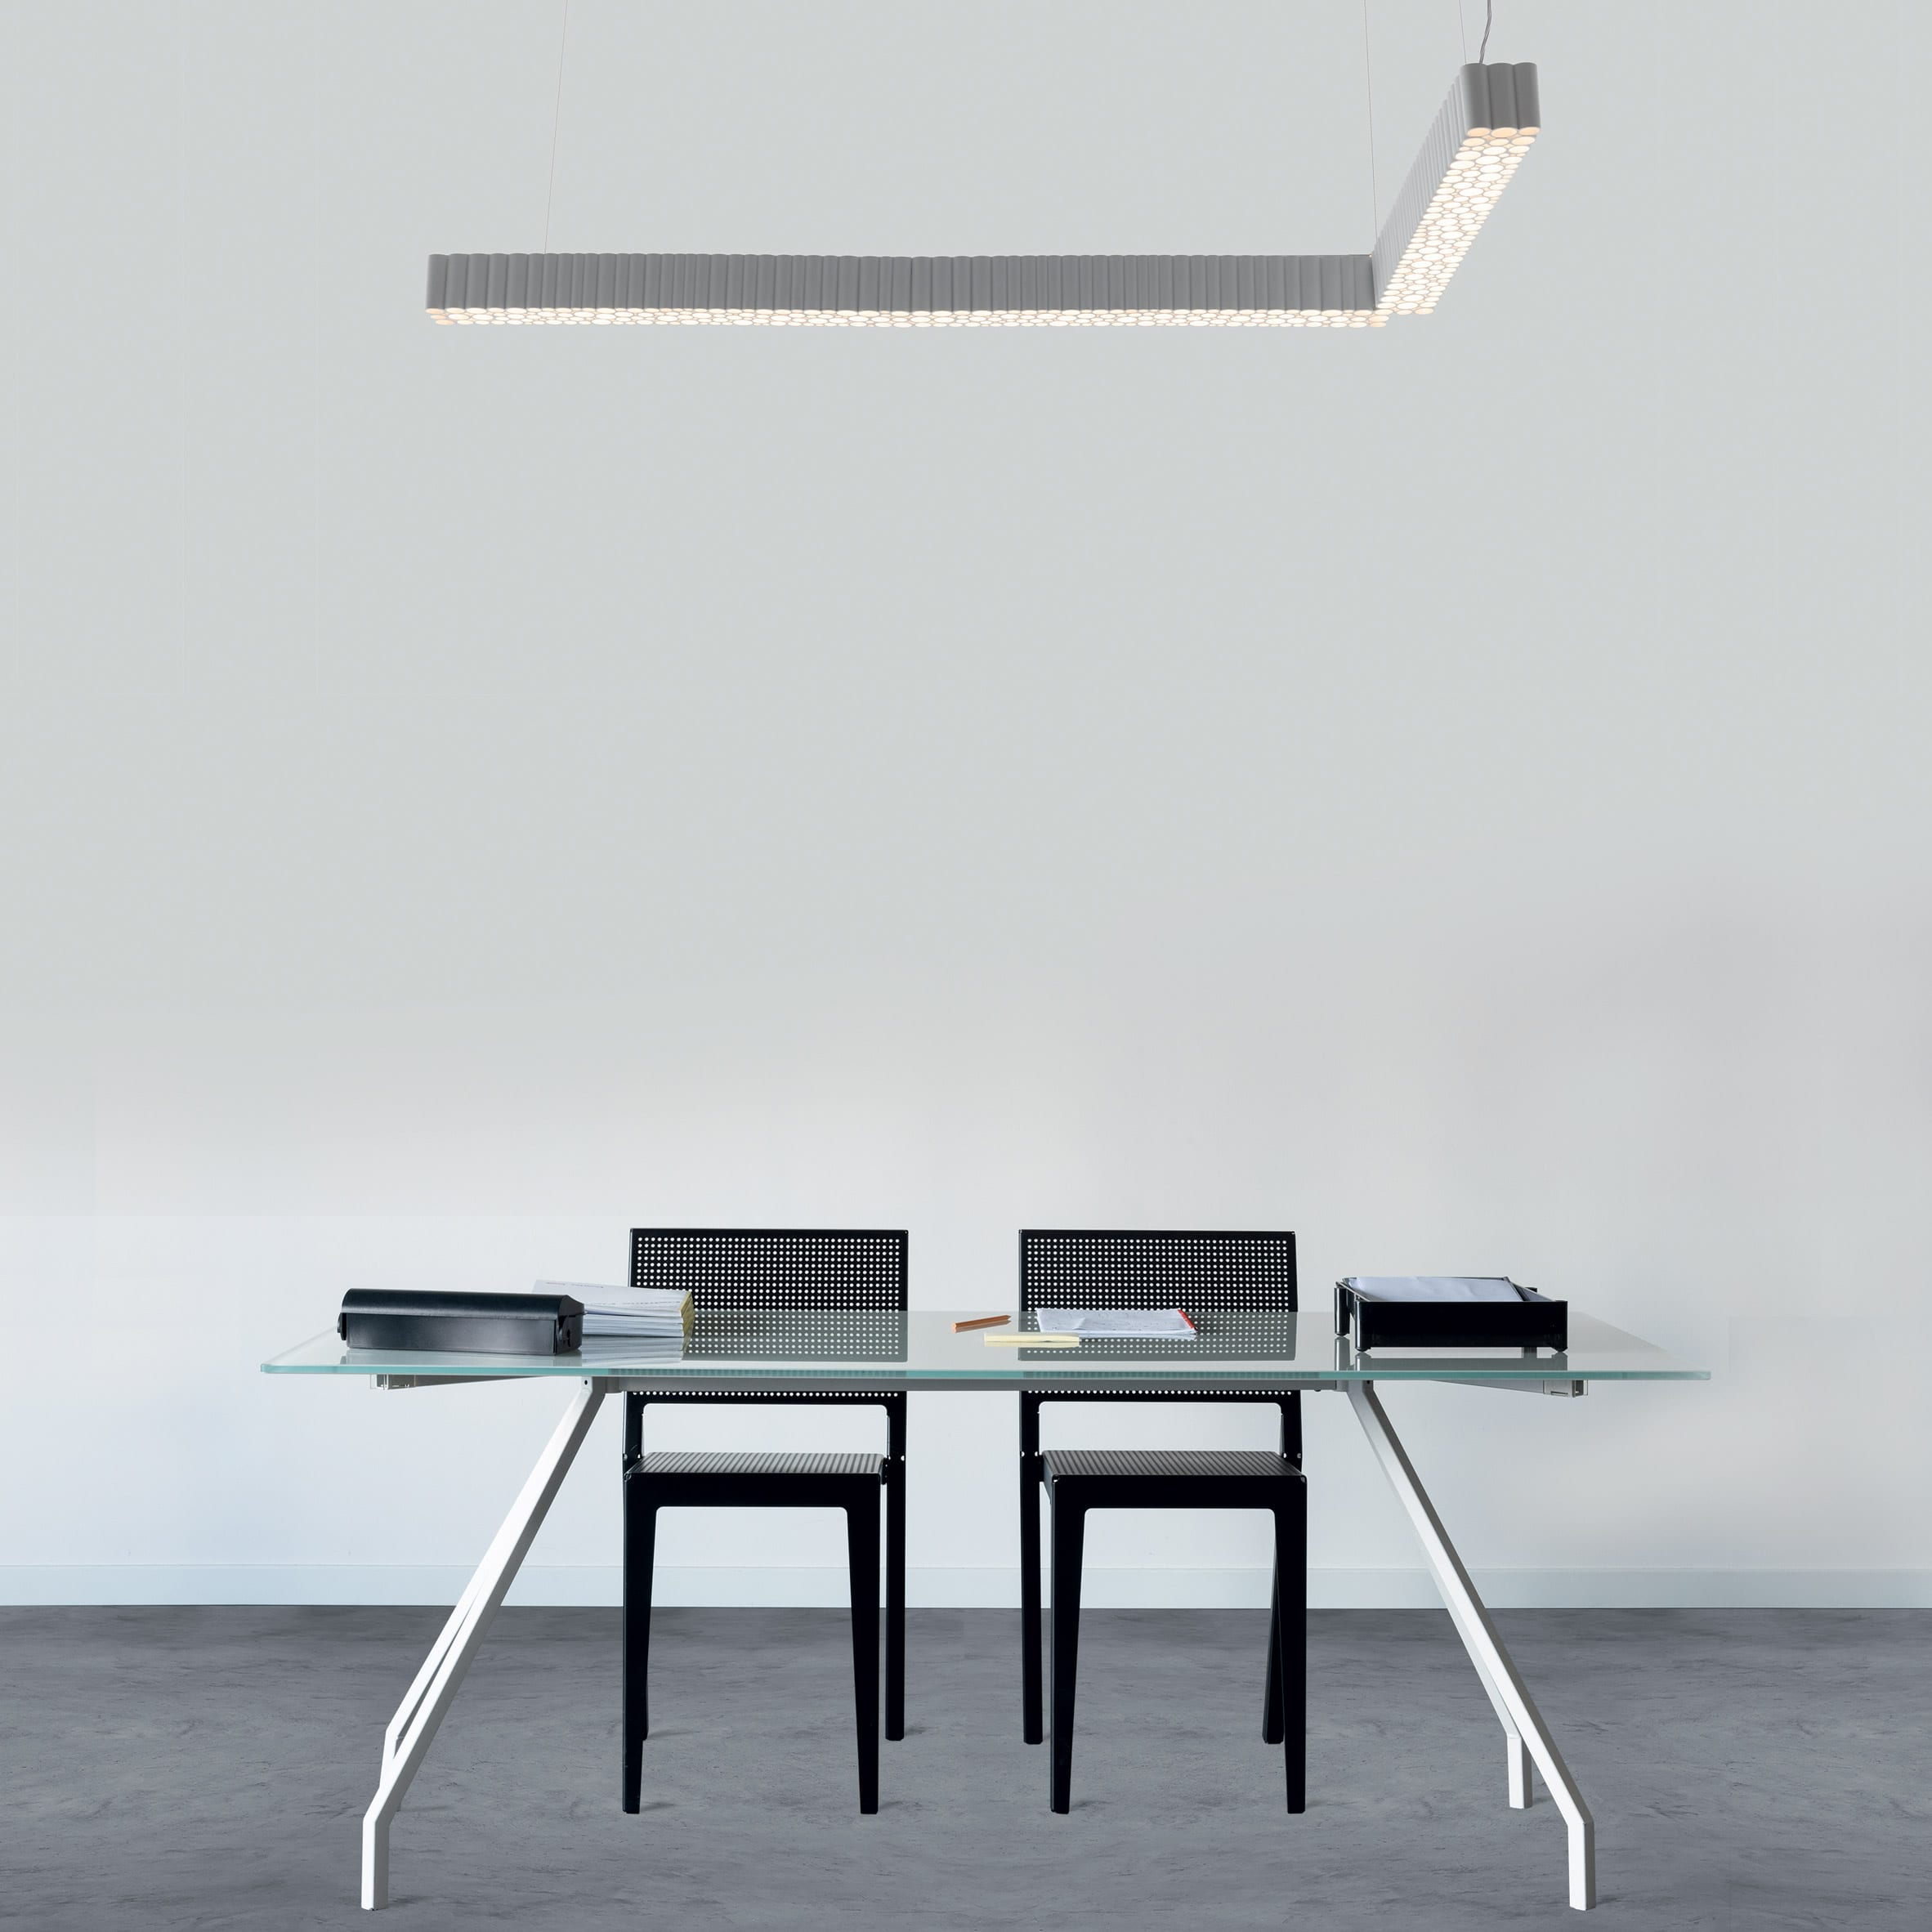 The Calipso light hanging above a table and chairs